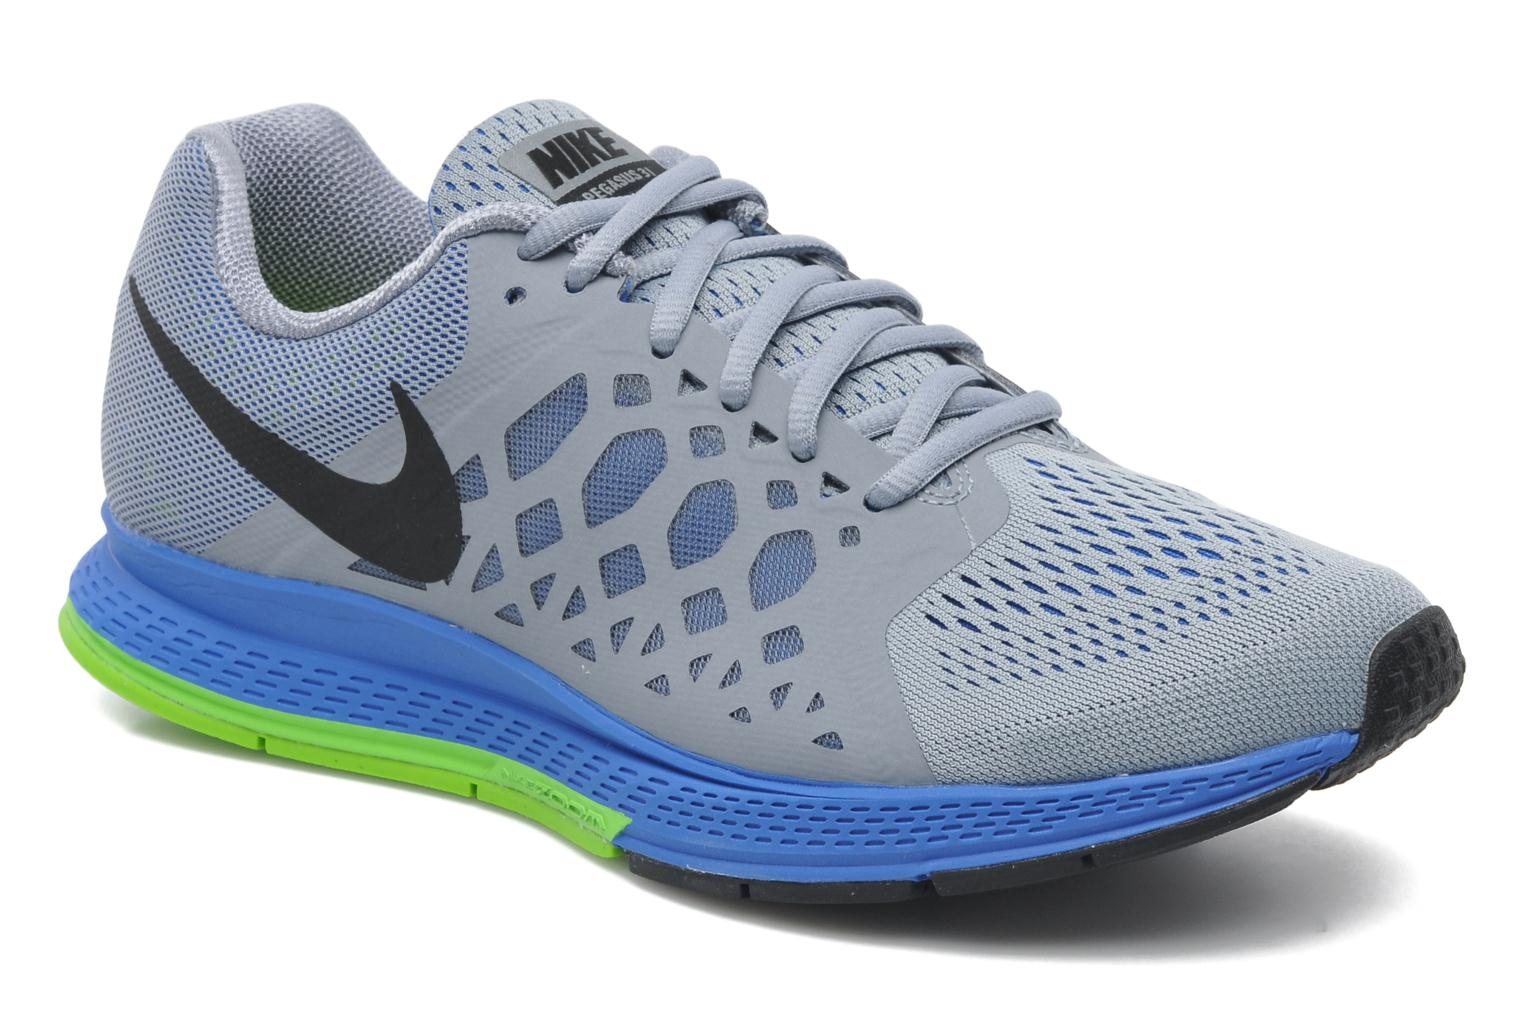 nike nike zoom pegasus 31 sport shoes in grey at sarenza. Black Bedroom Furniture Sets. Home Design Ideas